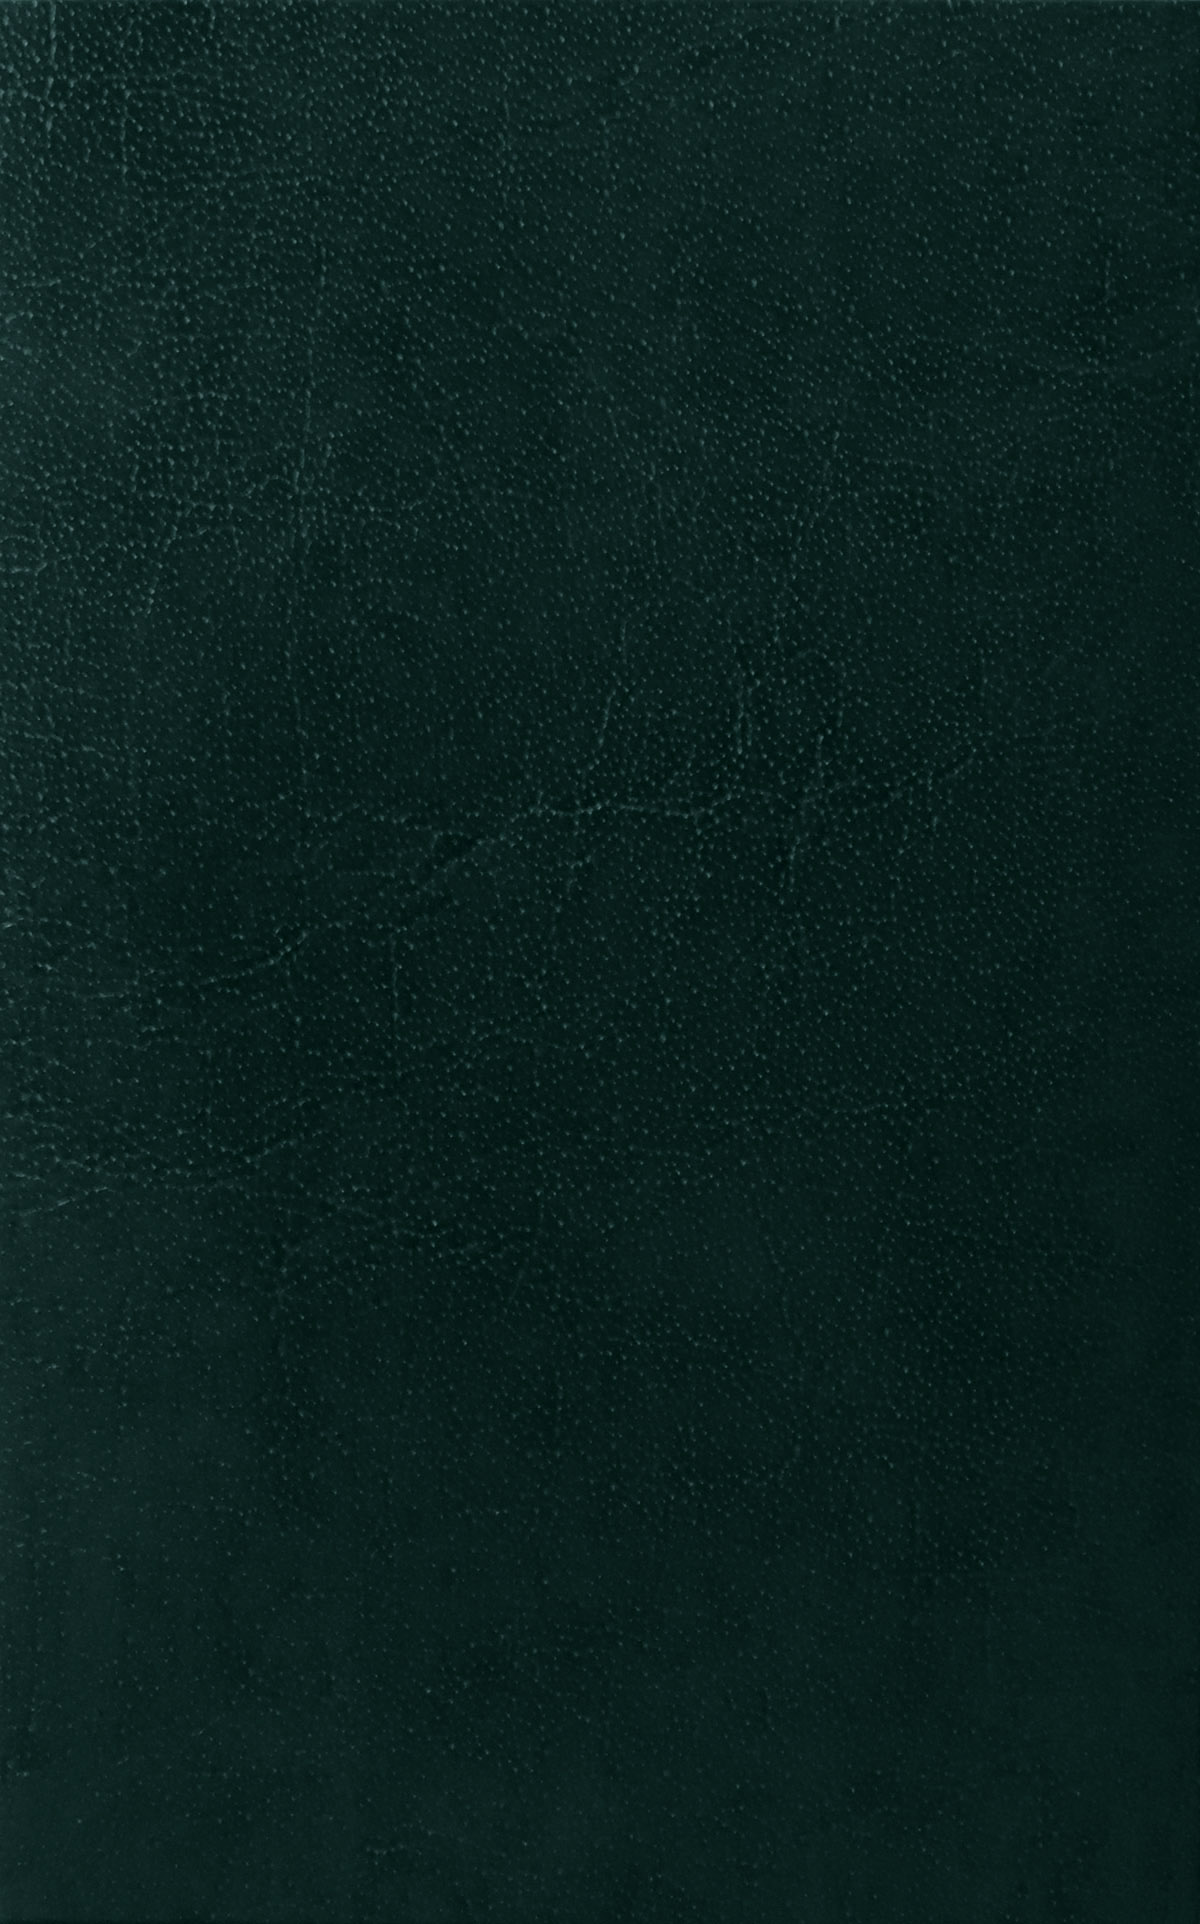 Del Mar bonded leather menu covers Swatch